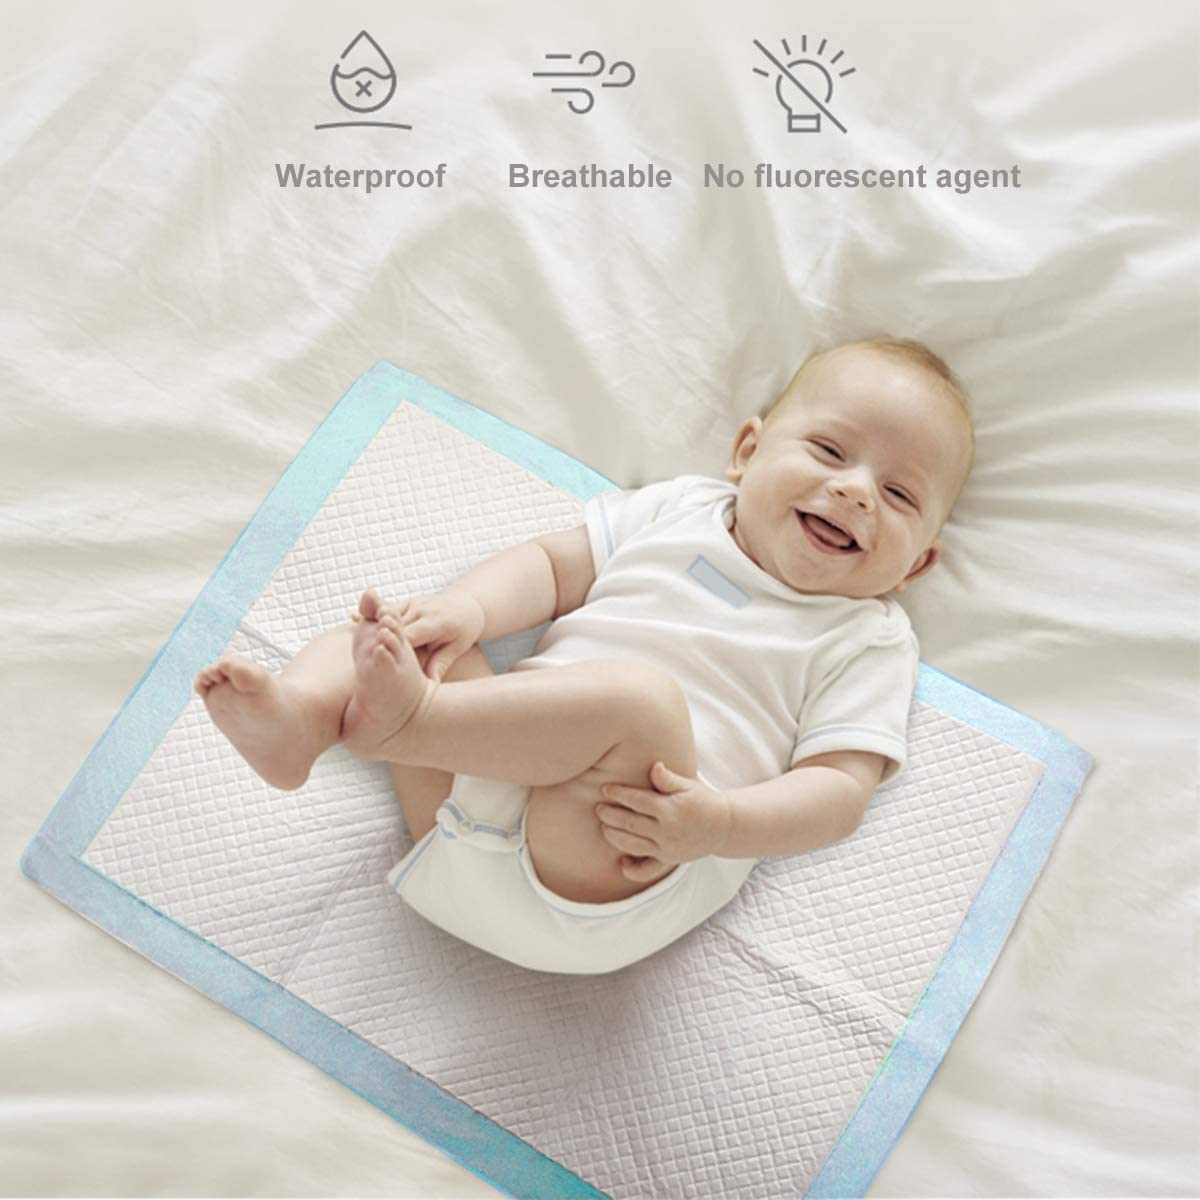 Portable Diaper Changing Table Soft Waterproof Mat Bekith 60 Pack Baby Disposable Changing Pad Liners / Covers any Surface for Mess Free Baby Diaper Changes